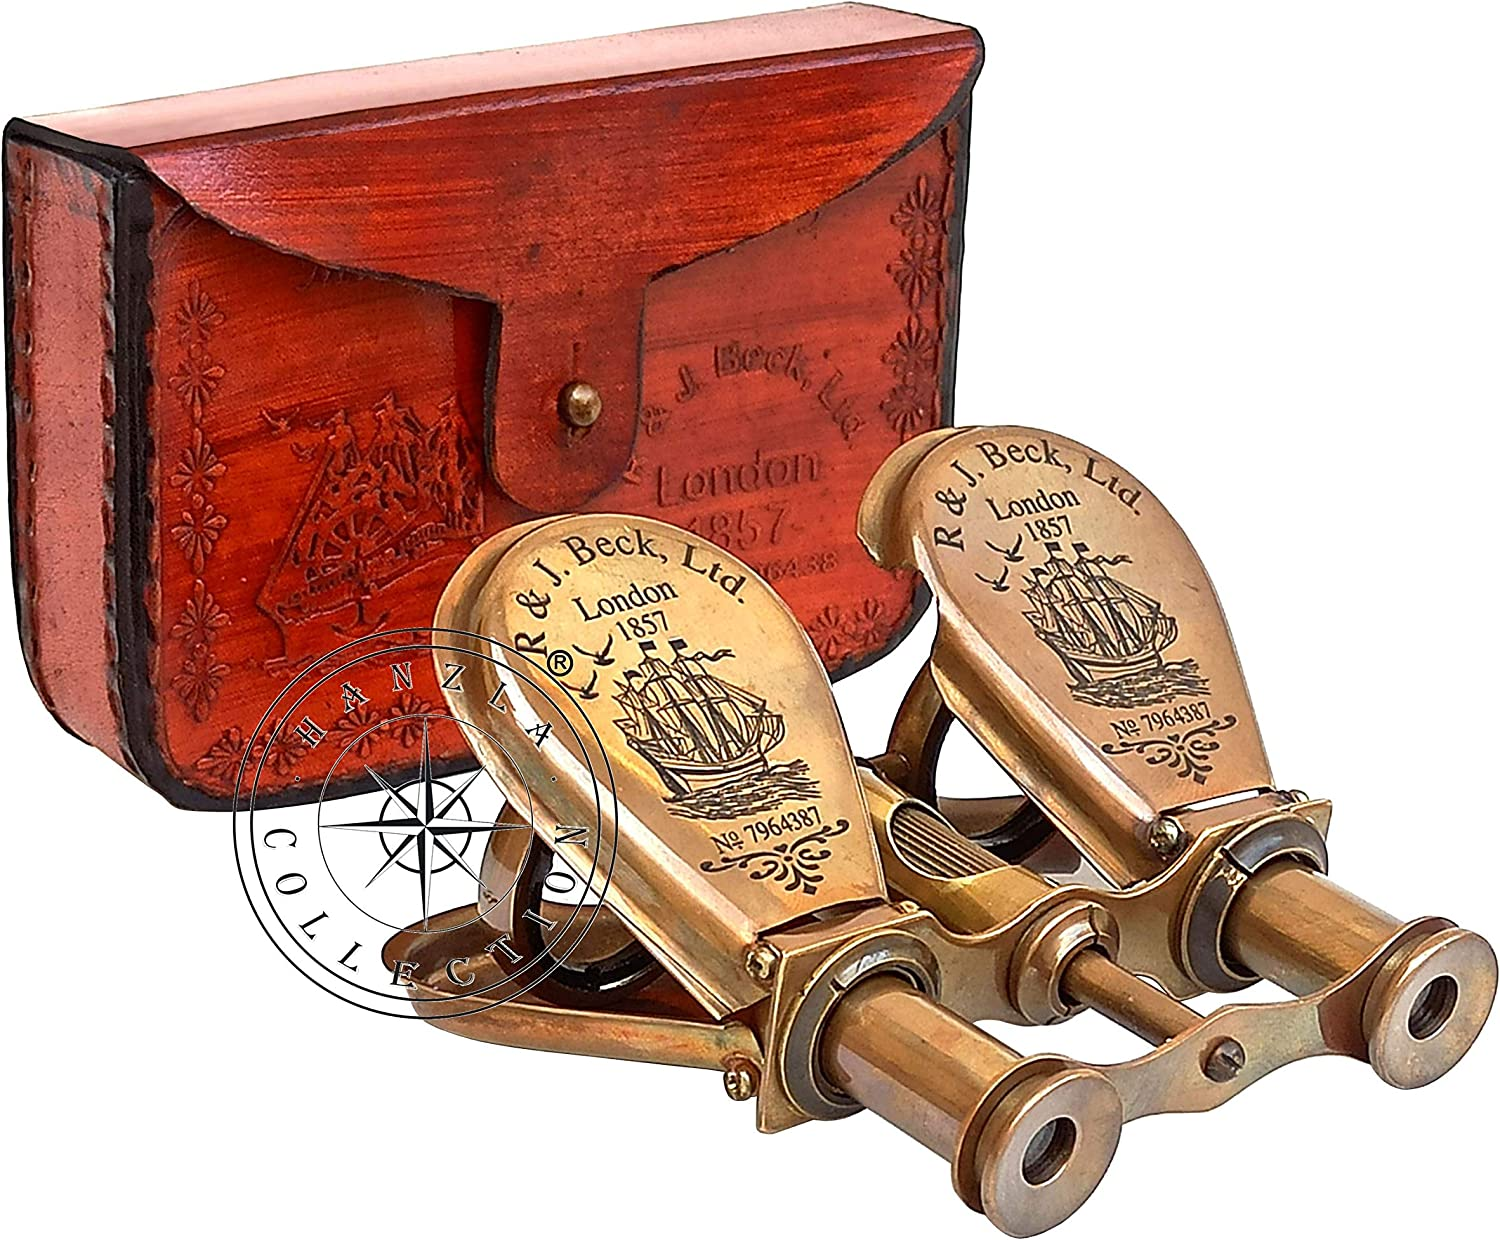 Collectibles Buy Nautial Black Antique 1857 London Binocular Leather Case with Vintage Magnifying Brass Compass Combo